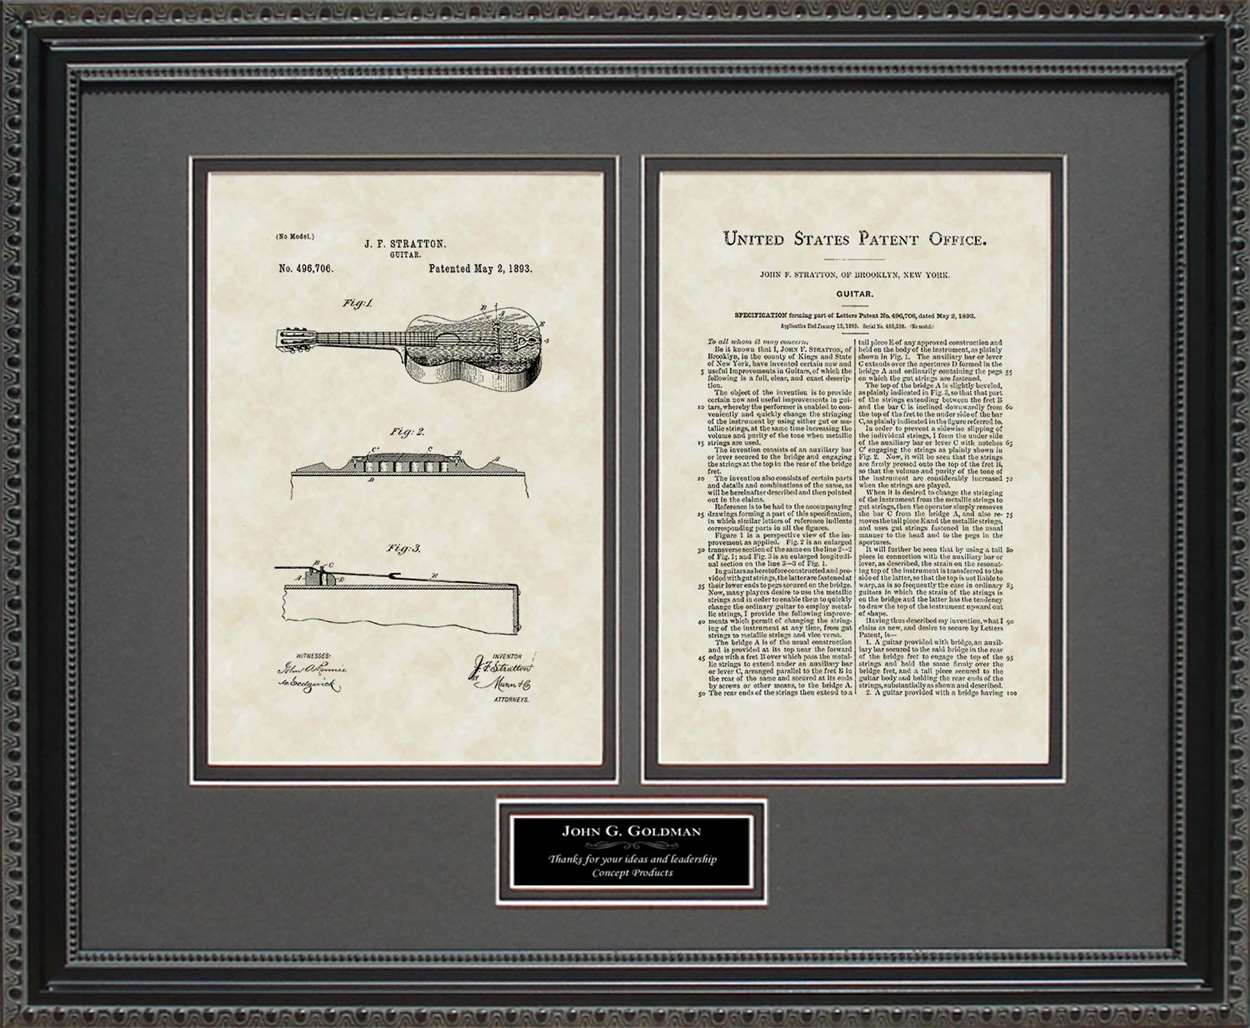 Personalized Guitar Patent, Art & Copy, Stratton, 1893